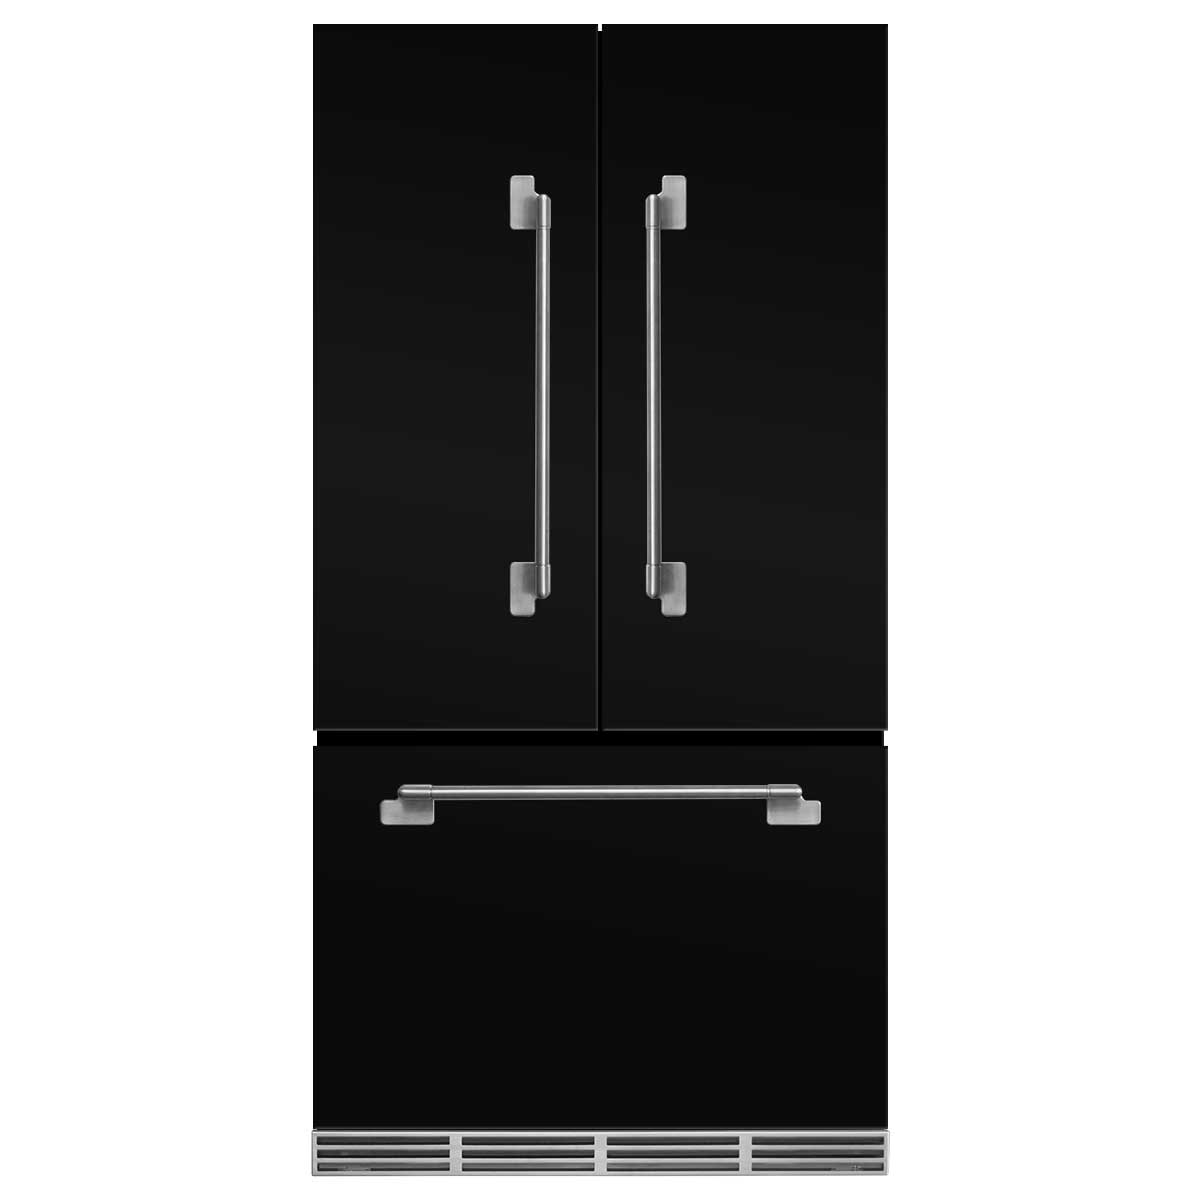 Marvel Elise French Door Counter-Depth Refrigerator